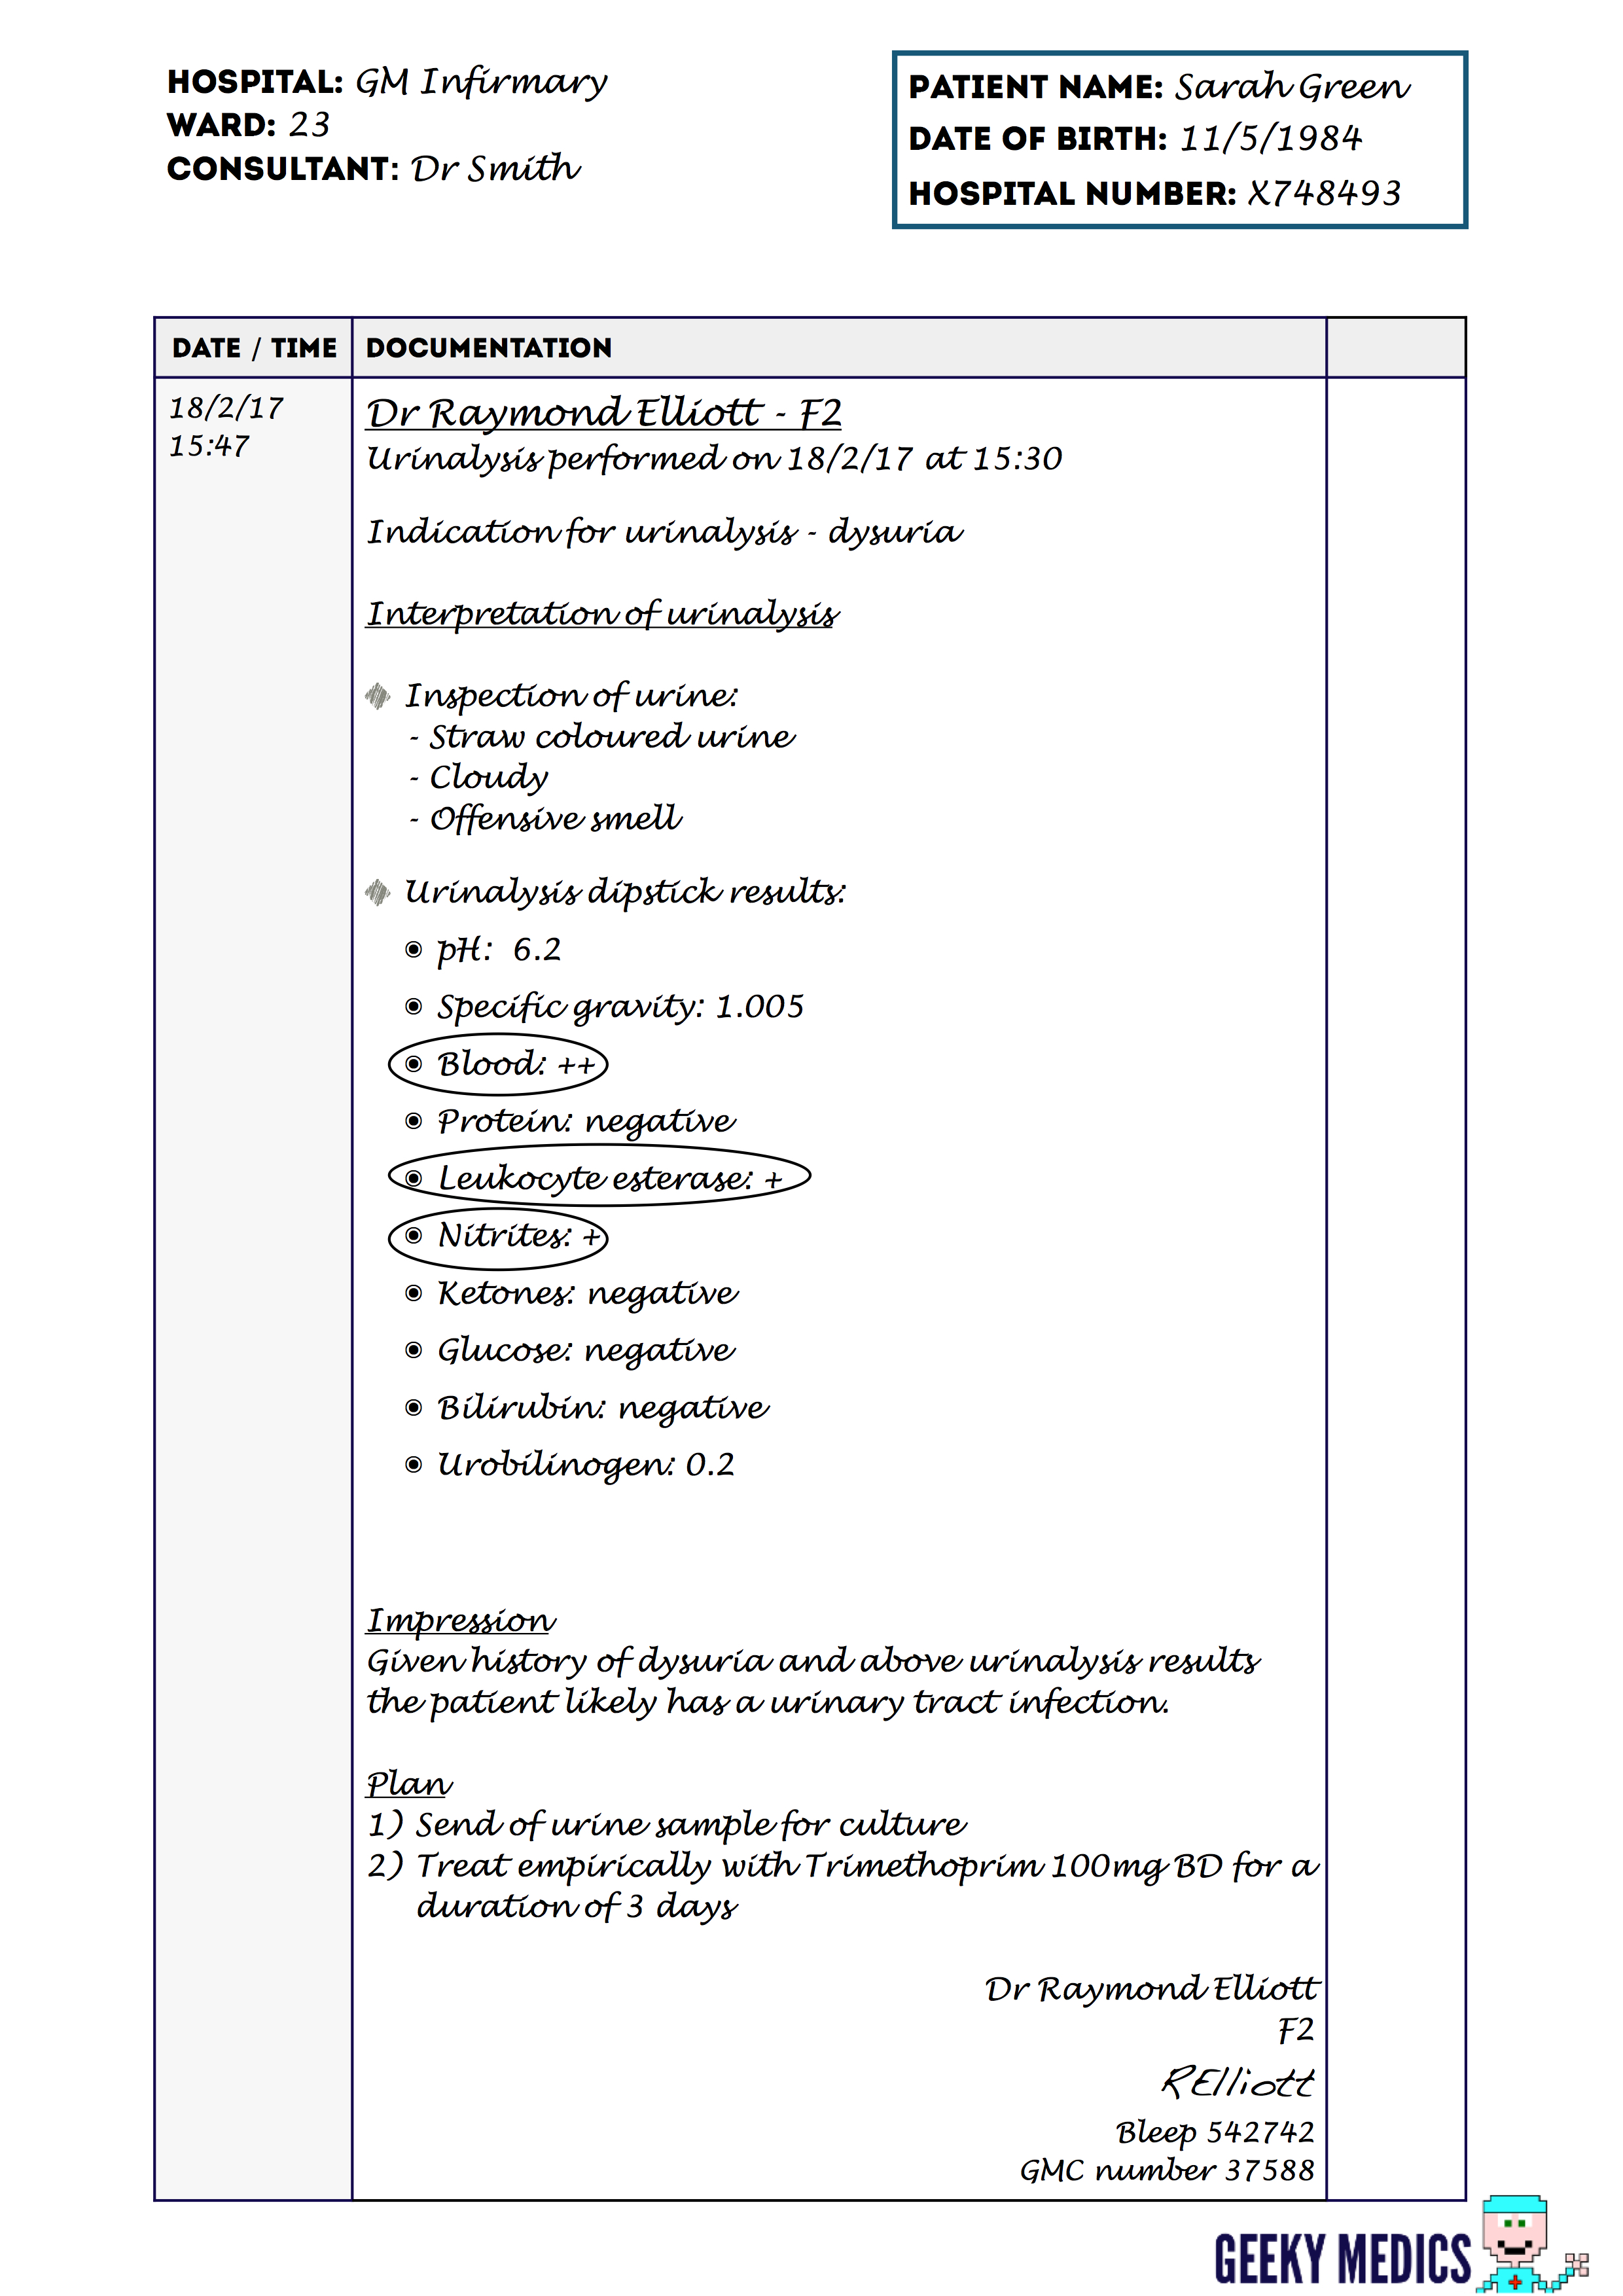 Urinalysis Complete How To Document Urinalysis Results In The Notes Geeky Medics